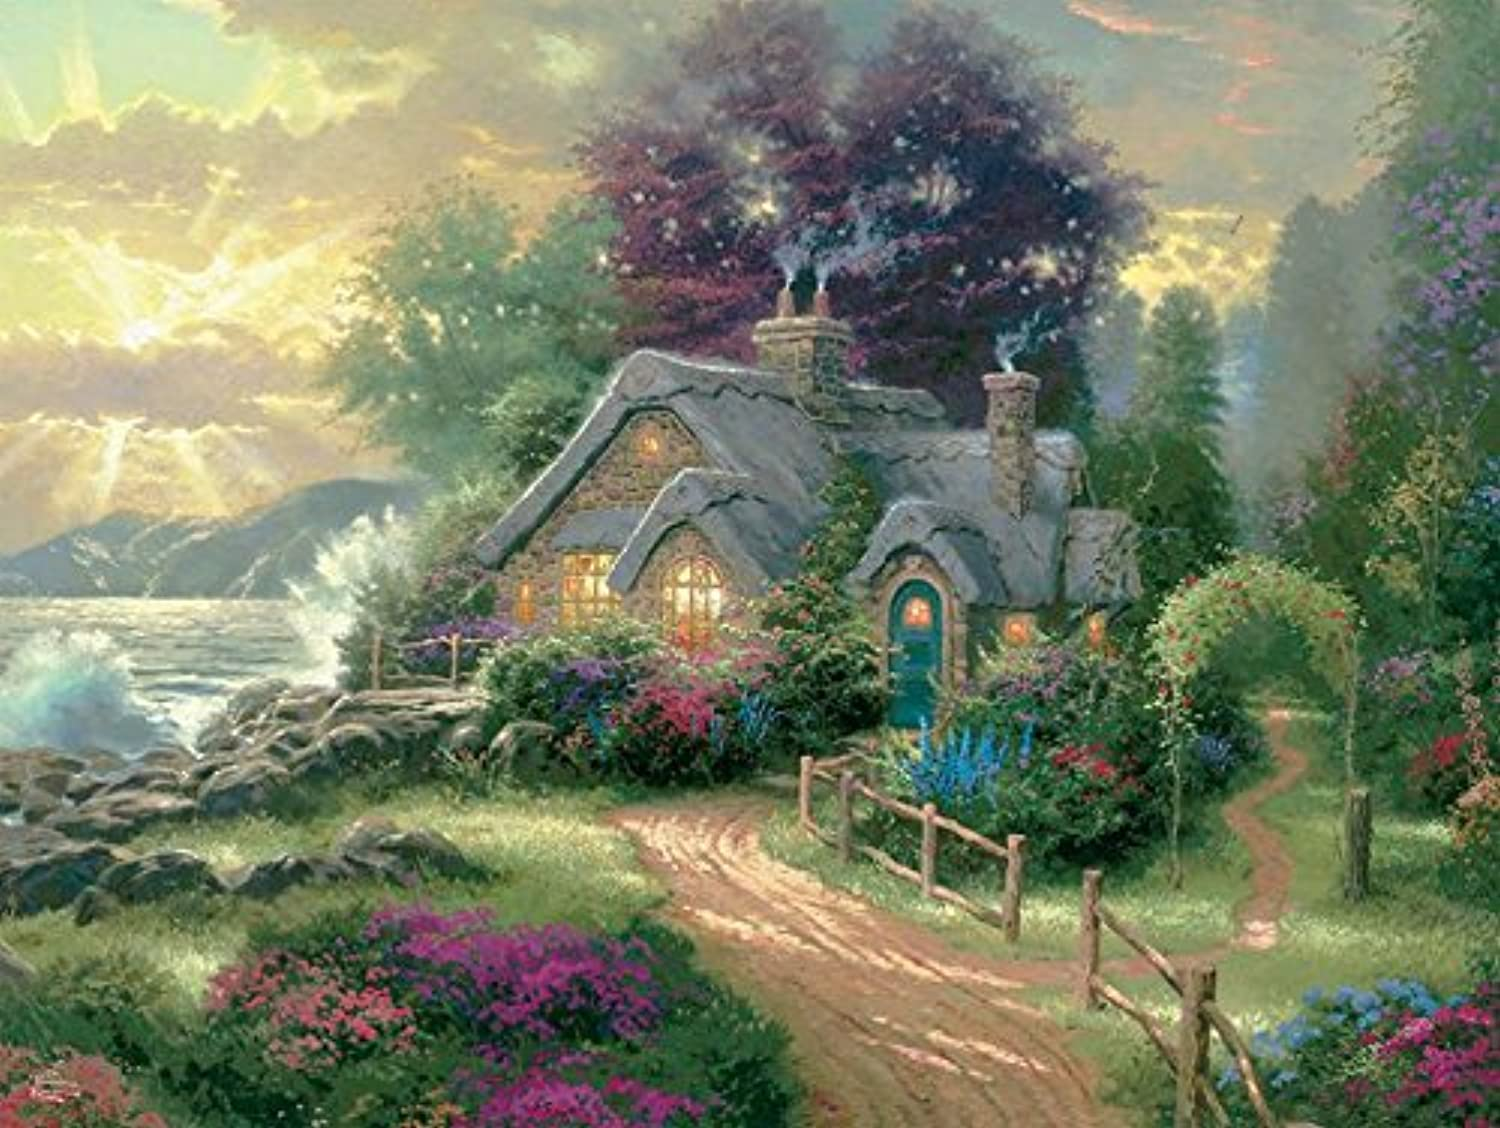 Ceaco 340130 A New Day Dawning Puzzle1500 Pieces